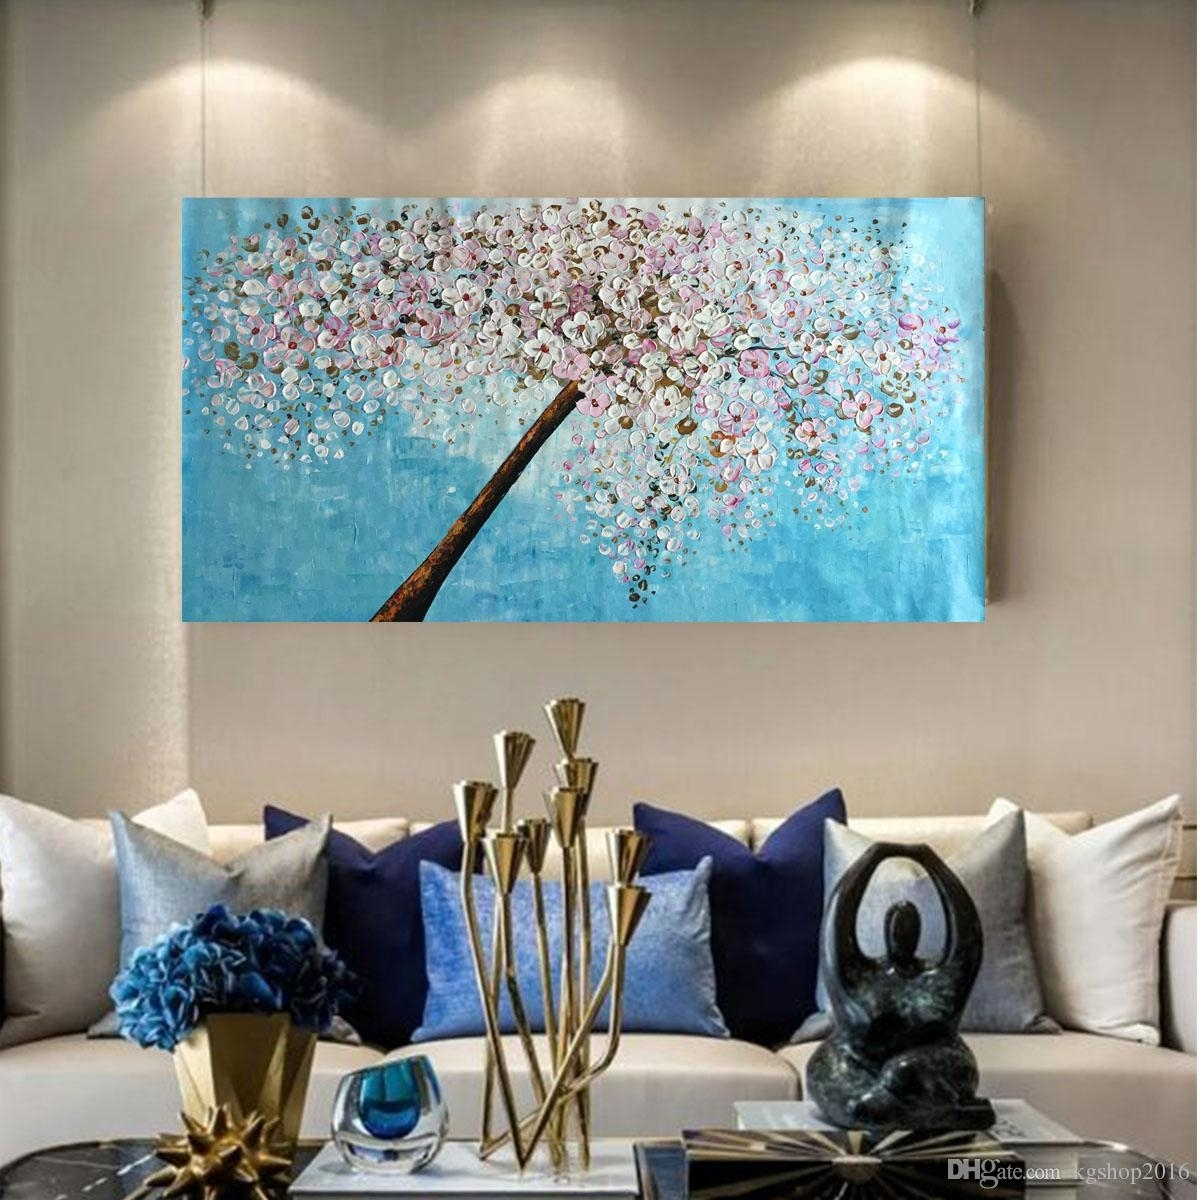 2018 Kgtech Thick Textured Acrylic Paintings 3D Floral Wall Art In Most Up To Date Acrylic Wall Art (Gallery 10 of 20)